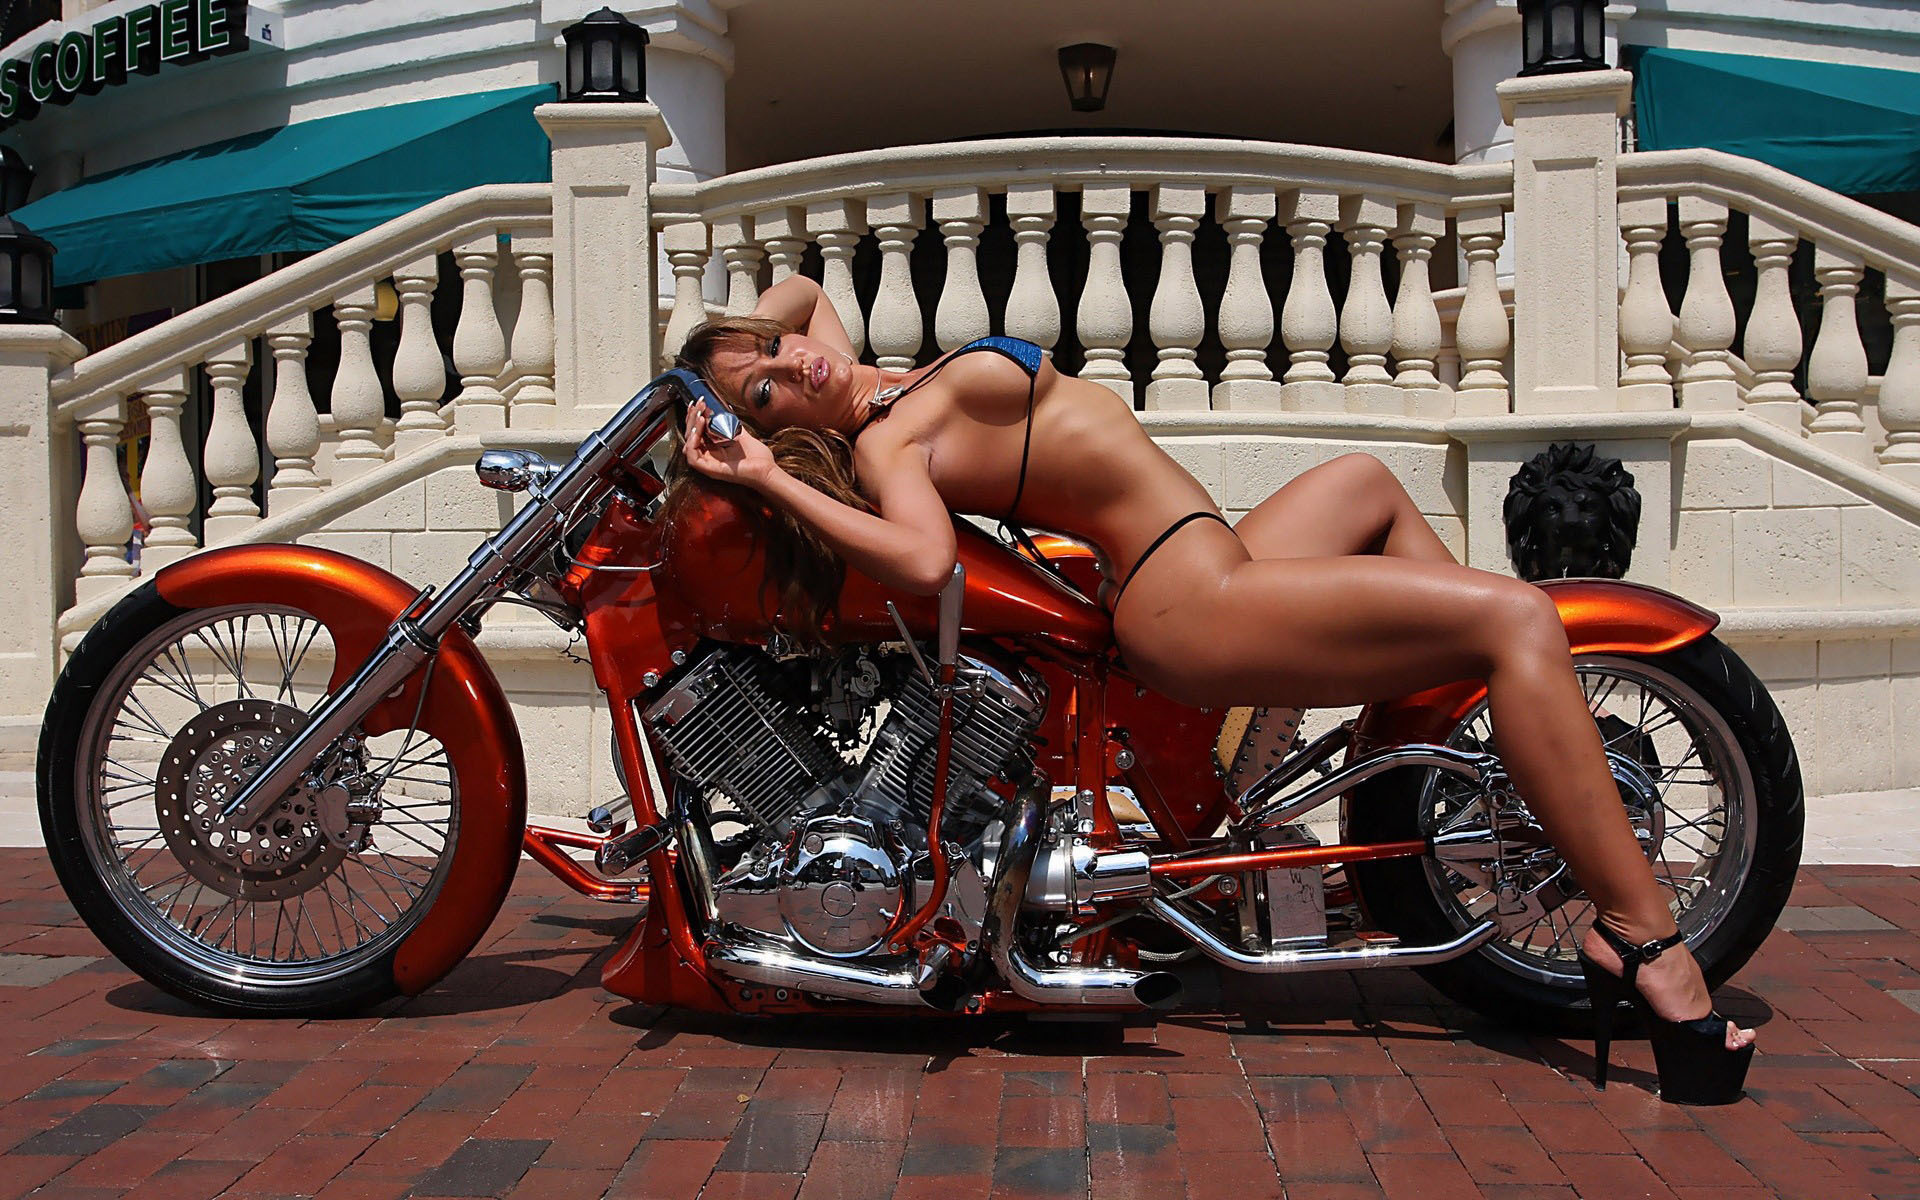 Harley davidson and topless, porn reference